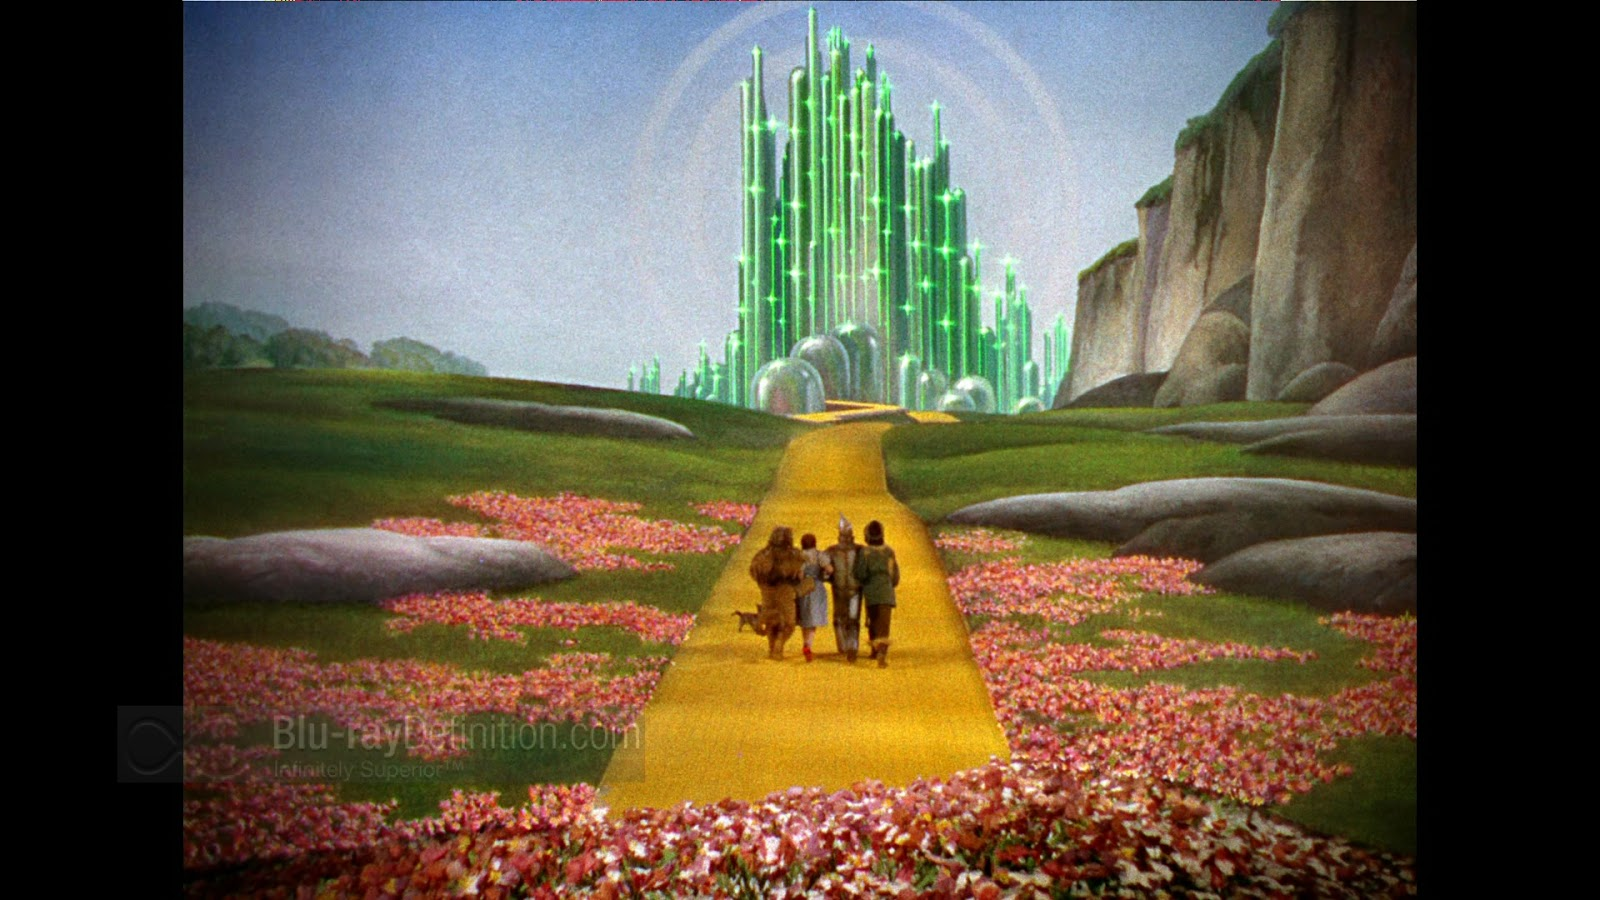 Wizard Of Oz clipart emerald castle Design (Erin) The of Oz